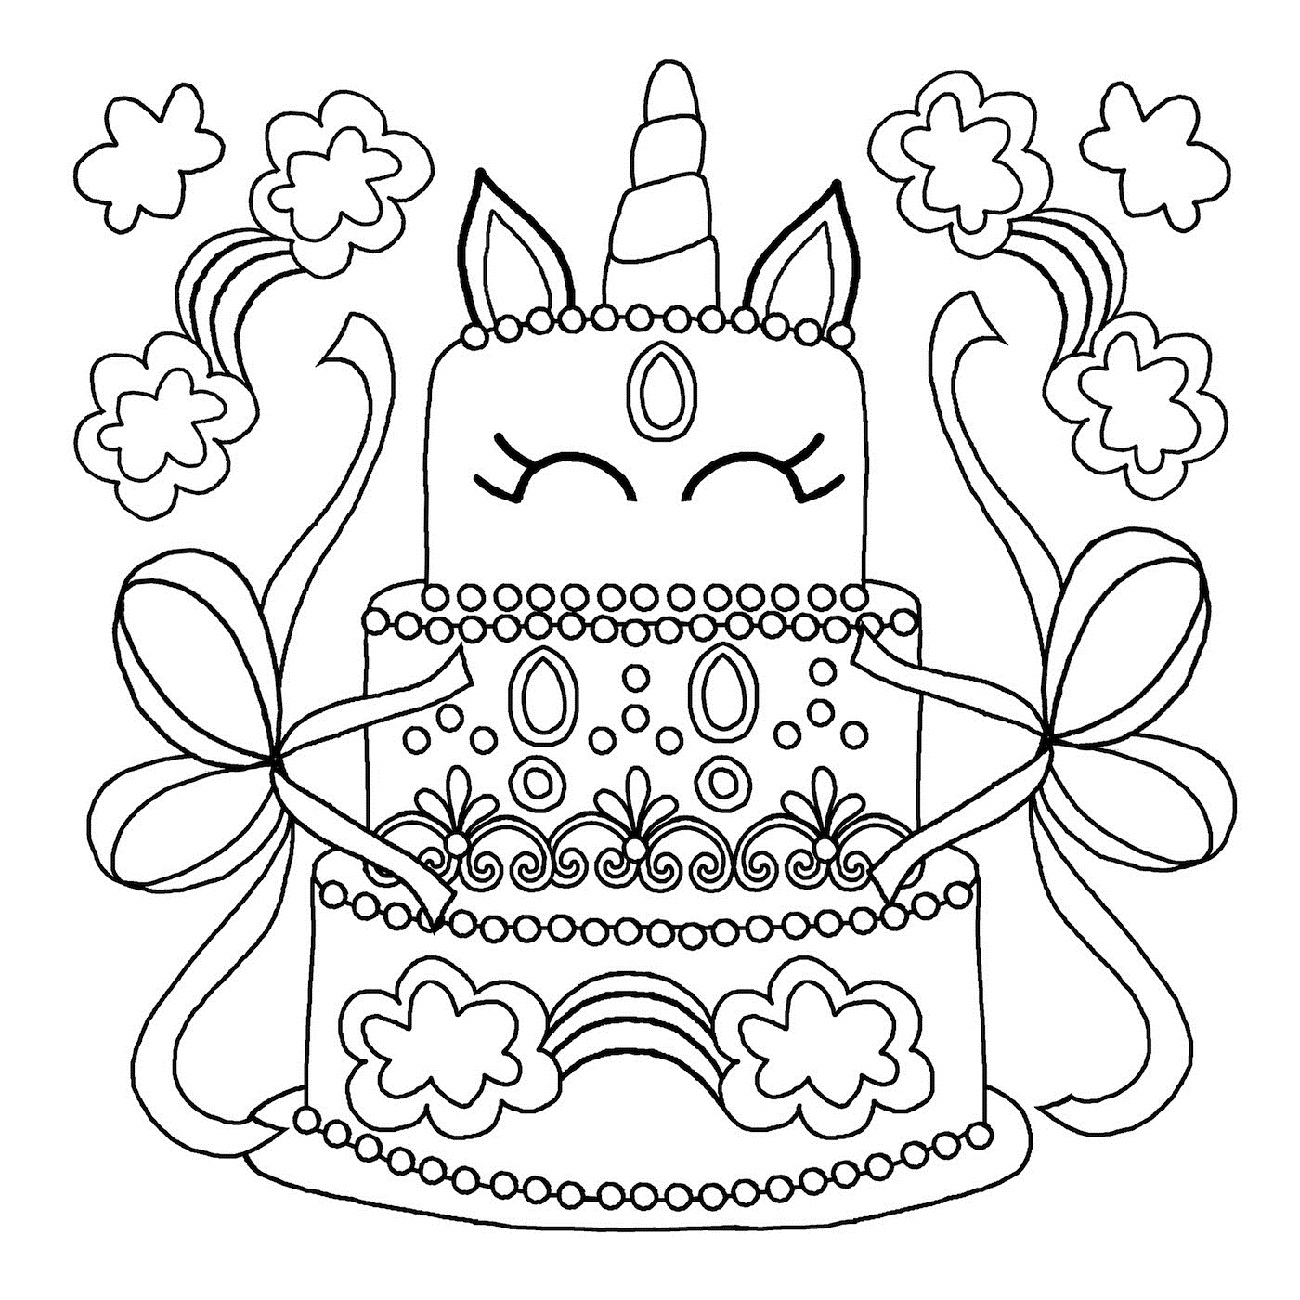 Birthday Cake Coloring Pages Printable | 101 Coloring